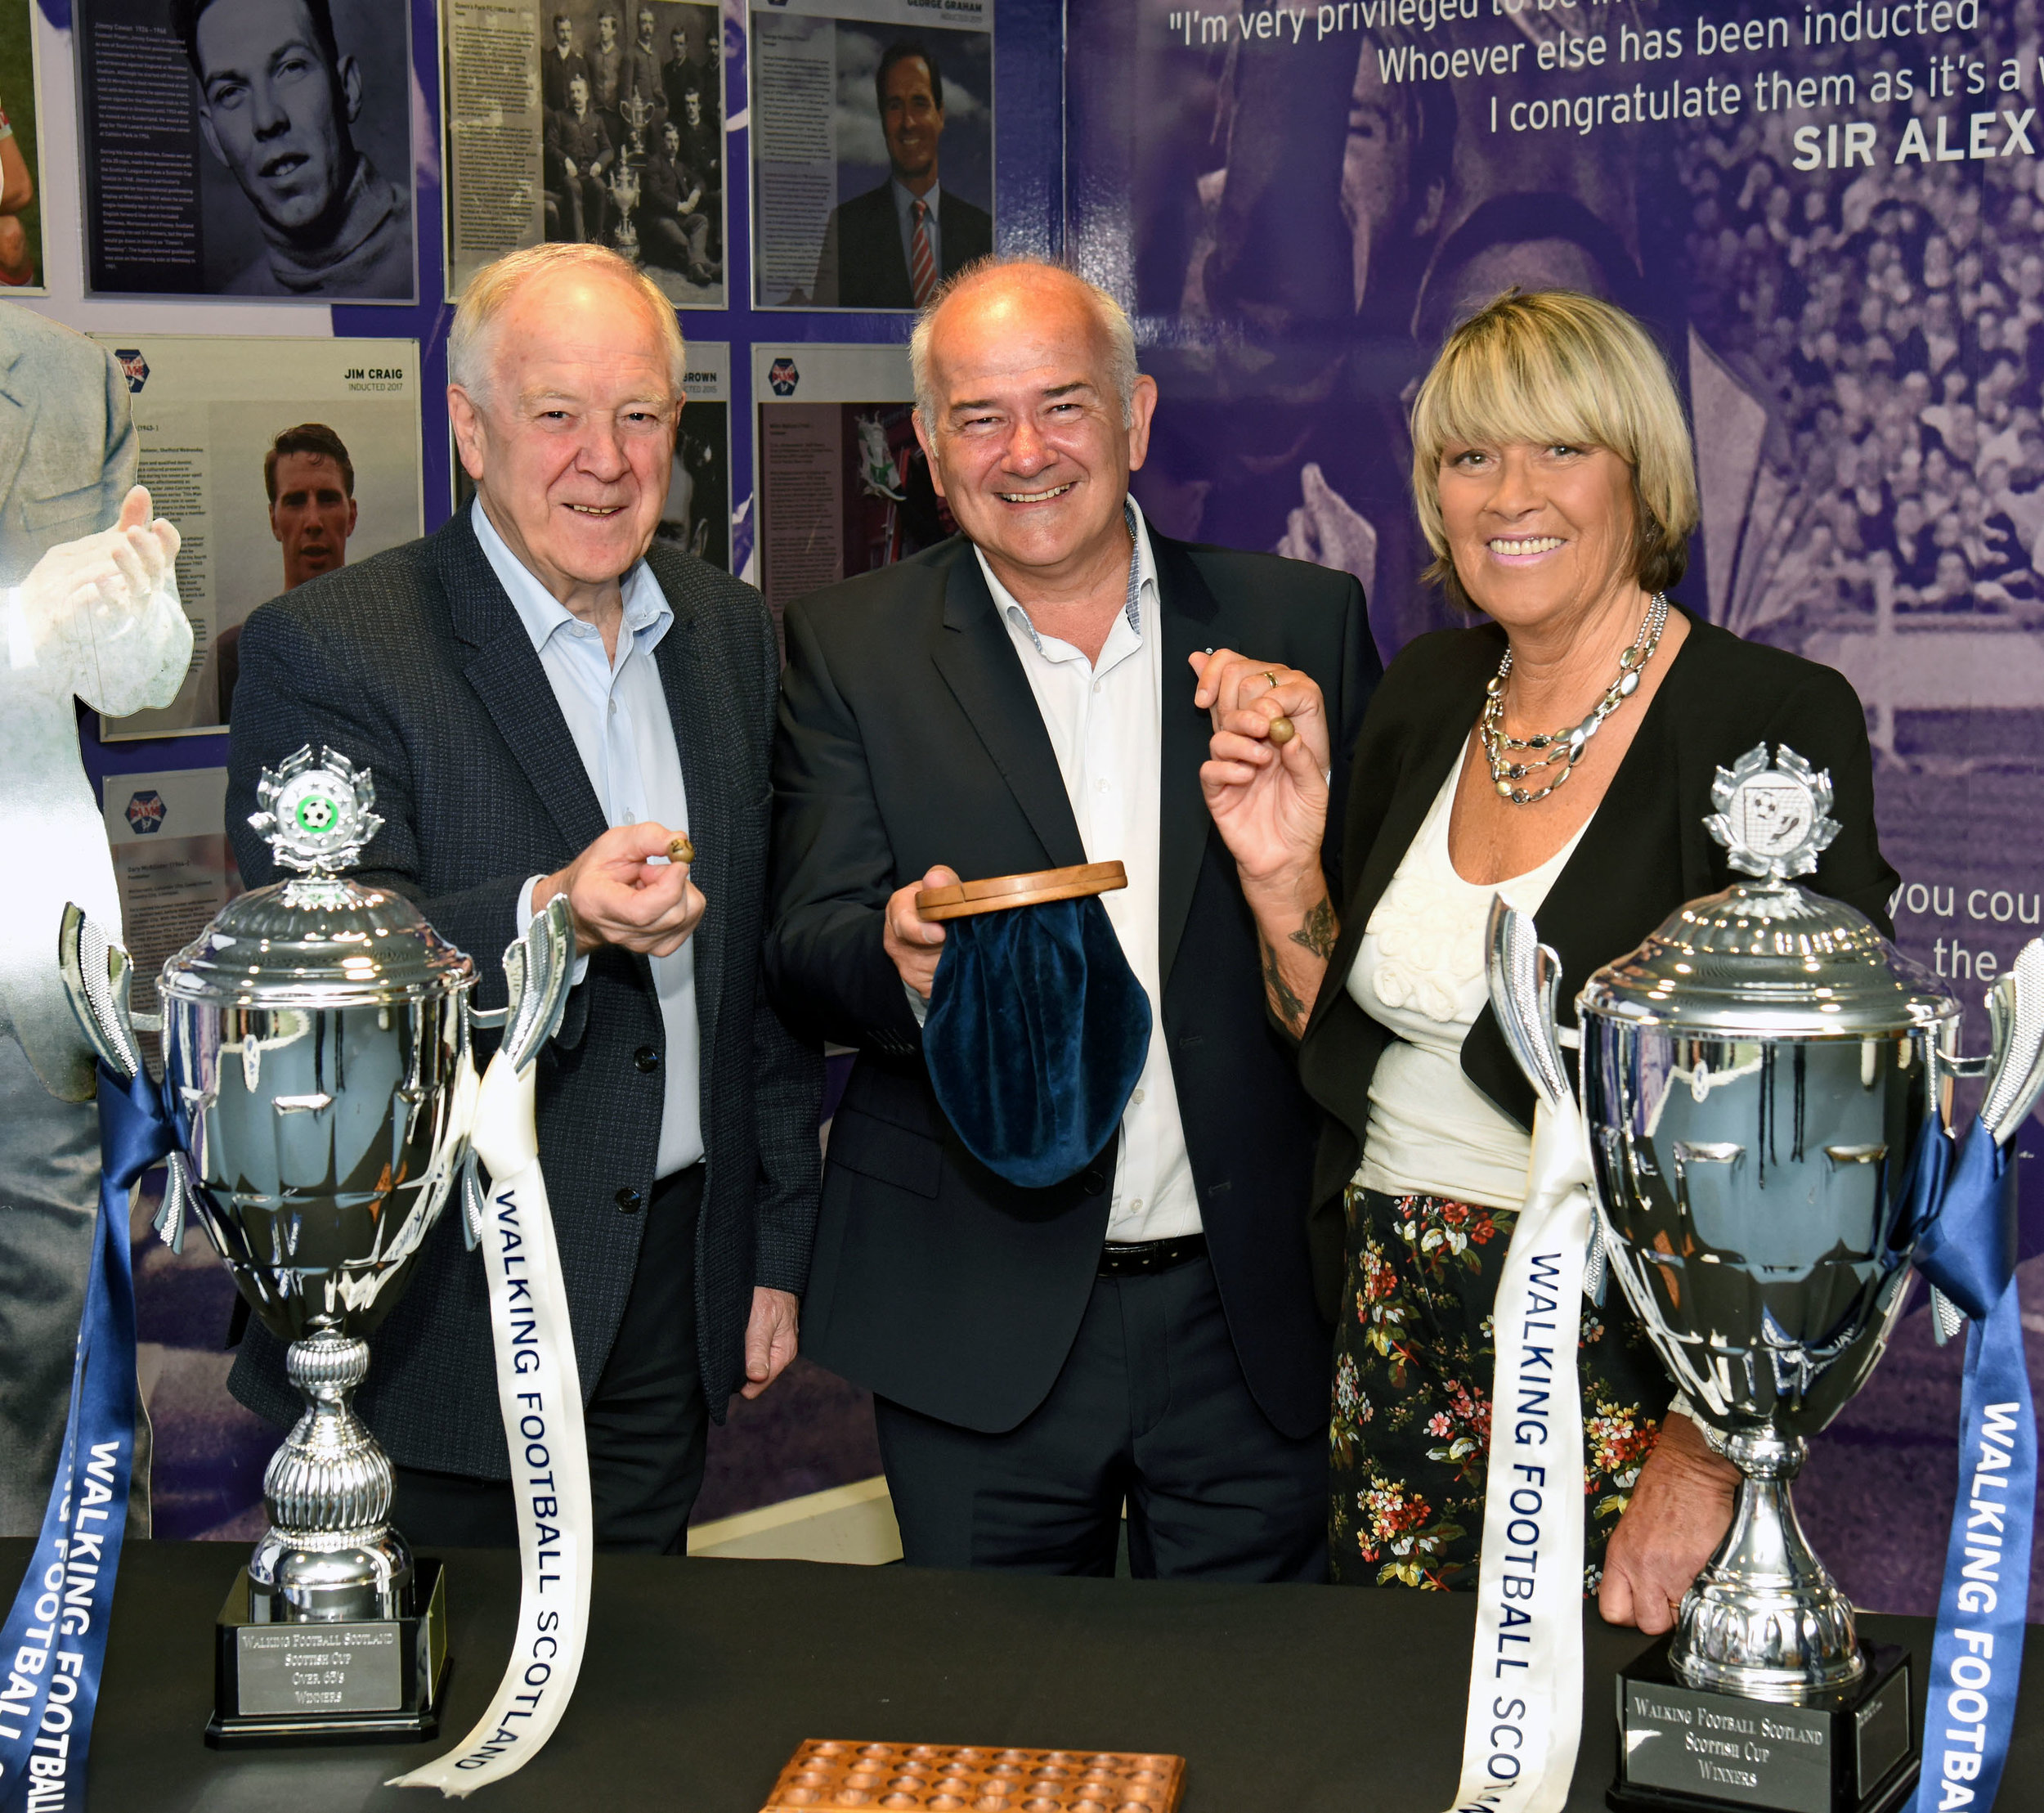 Walking Football Scotland Patrons Craig Brown and Rose Reilly join WFS Chair Gary McLaughlin (centre) for the draw in the Scottish Football Museum at Hampden Park in Glasgow.